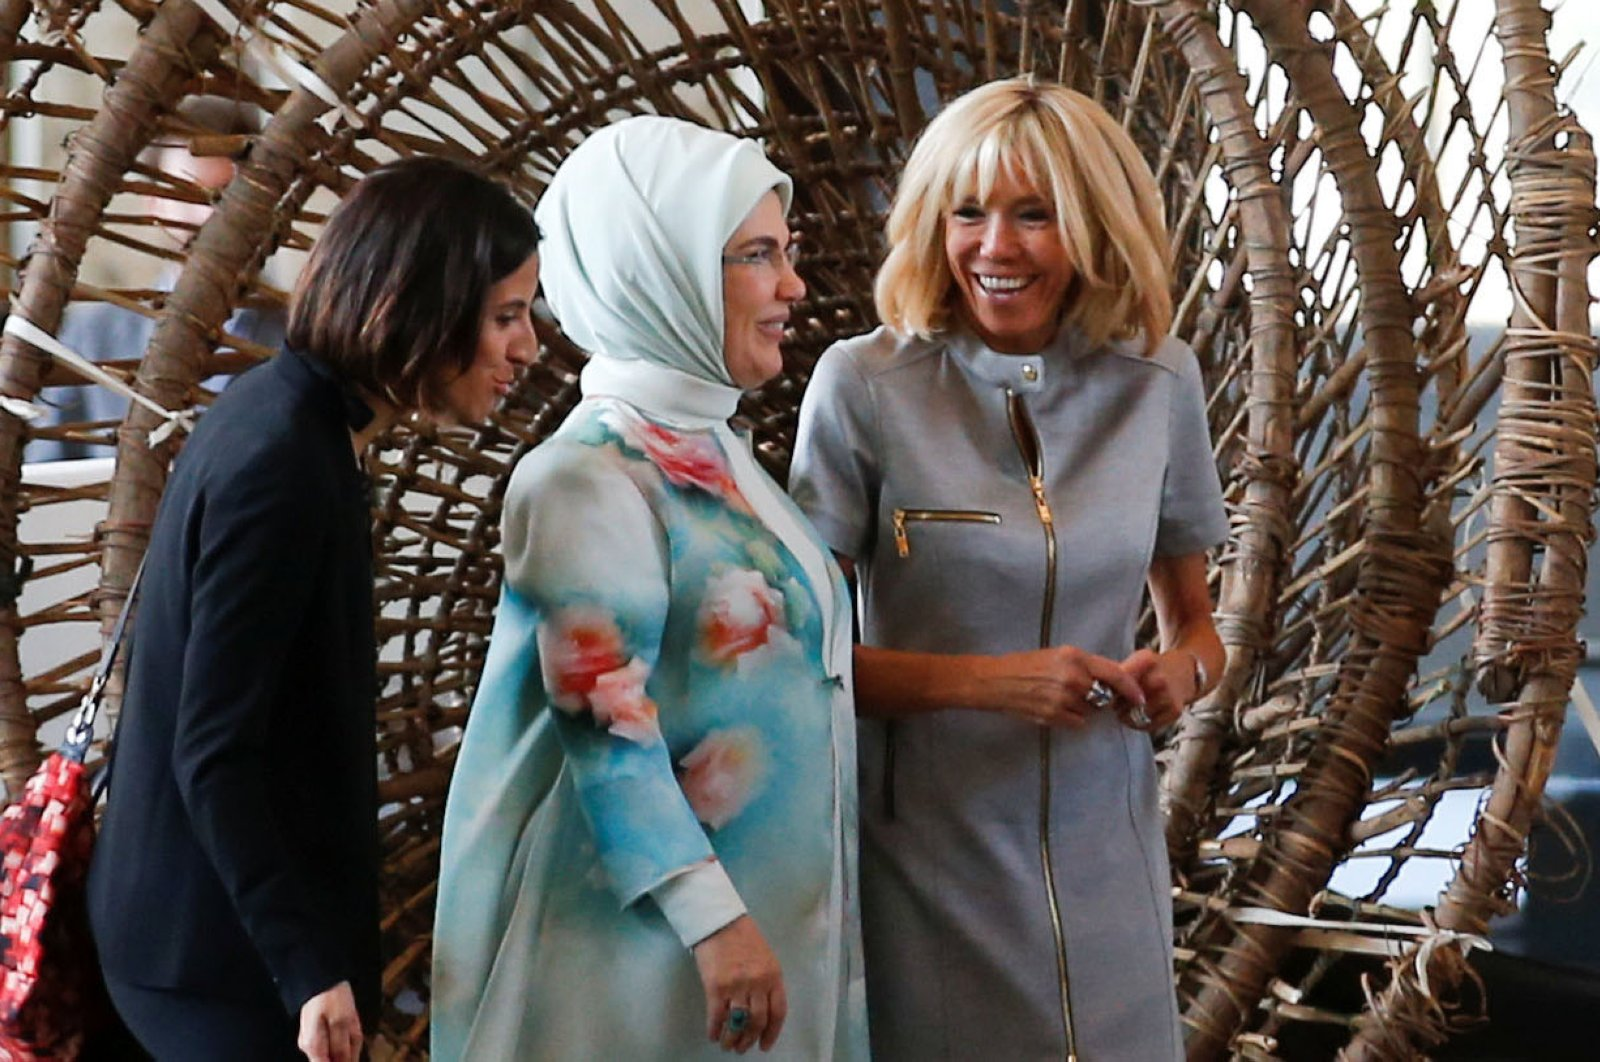 Turkey's first lady Emine Erdogan and France's first lady Brigitte Macron visit the Royal Museum for Central Africa, during the NATO leaders summit, in Brussels, Belgium July 12, 2018. (Reuters Photo)